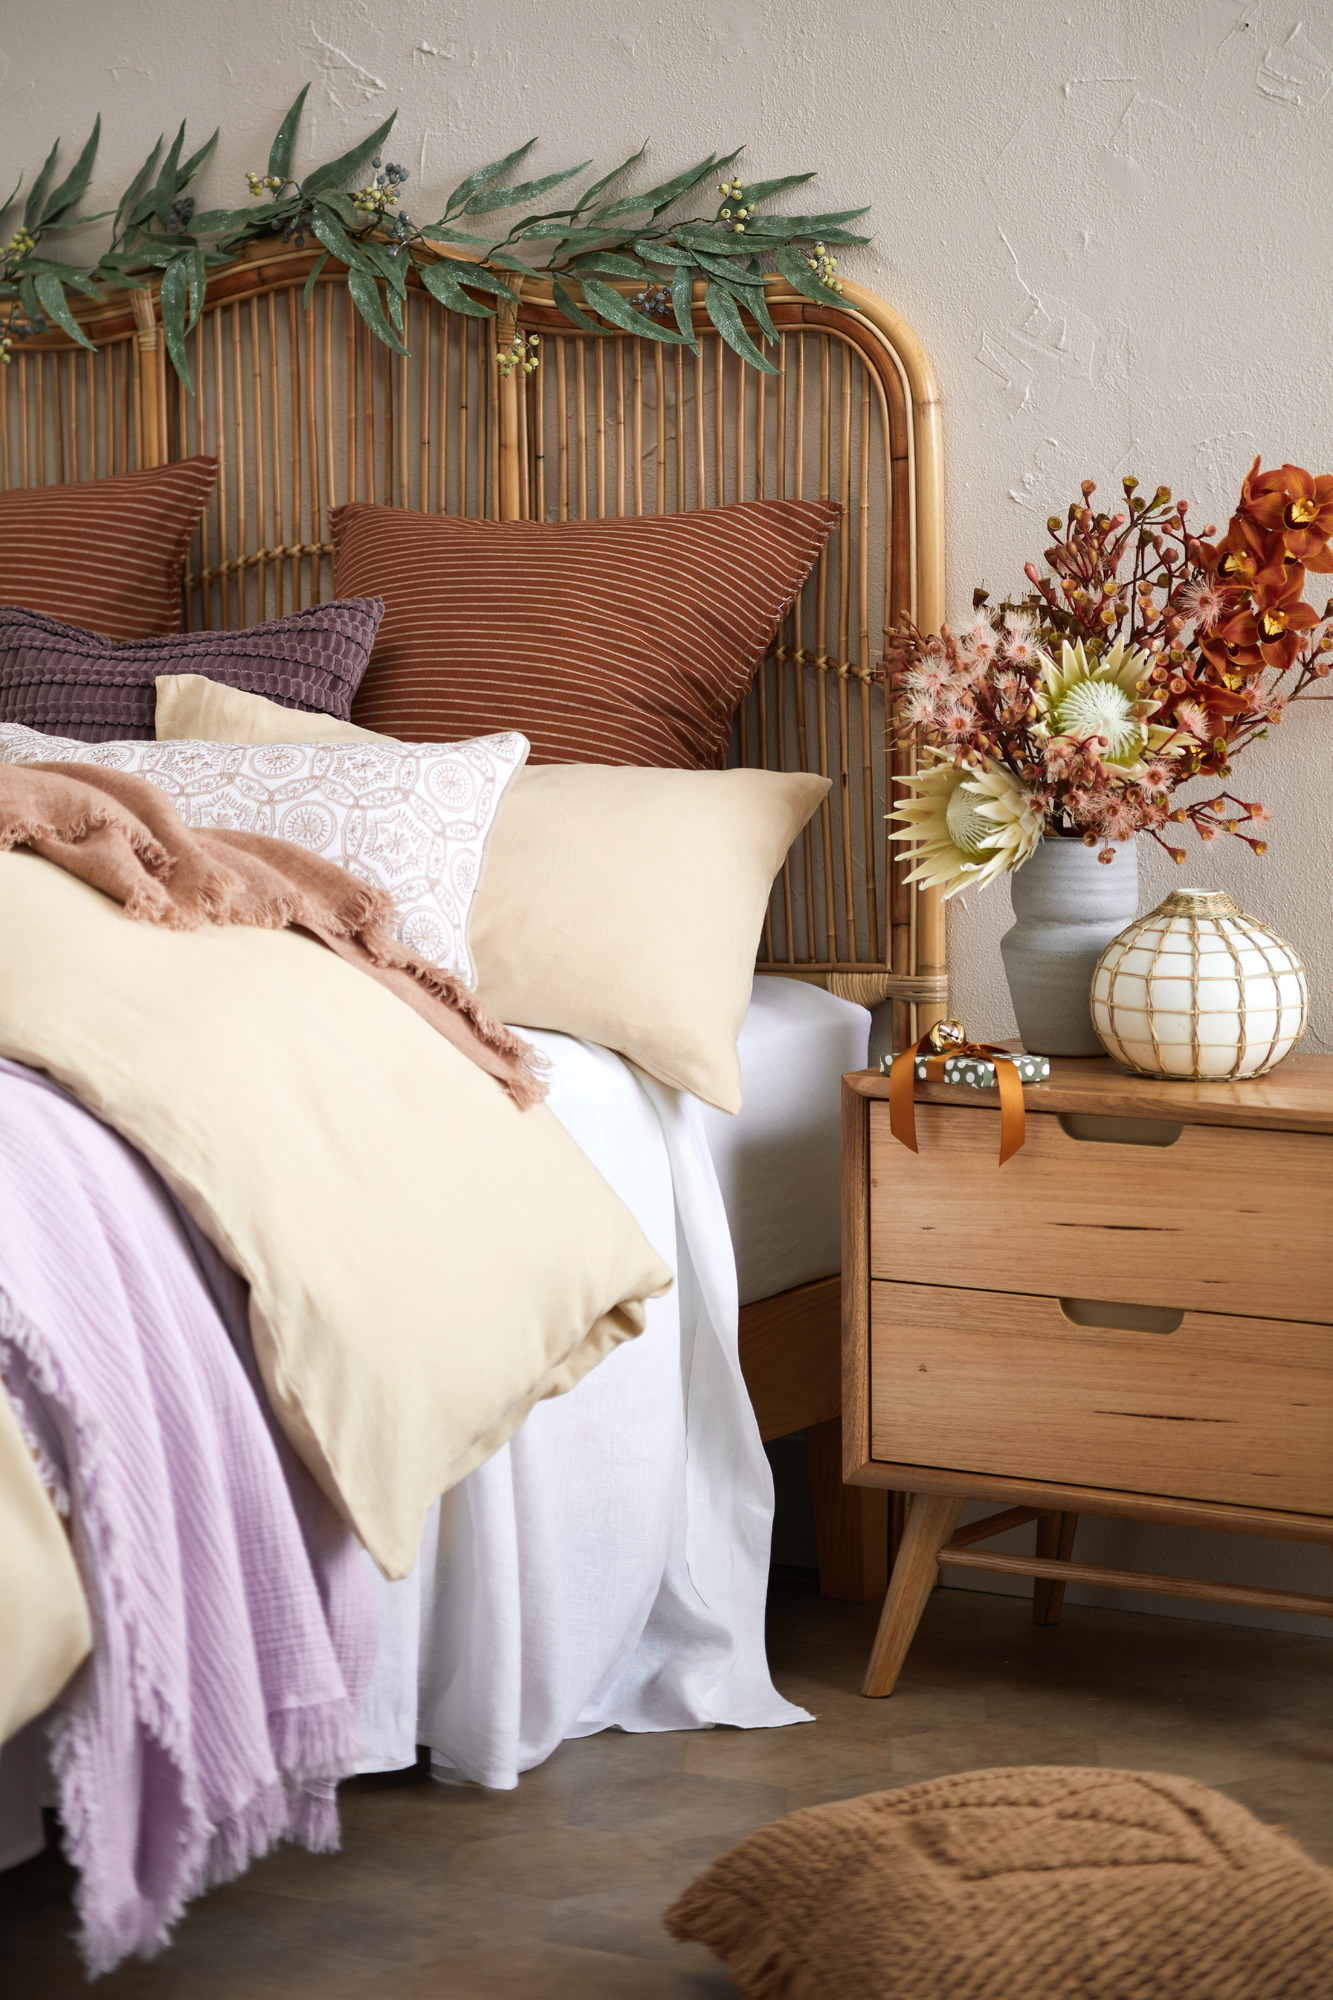 Marley Messmate bedside table styled